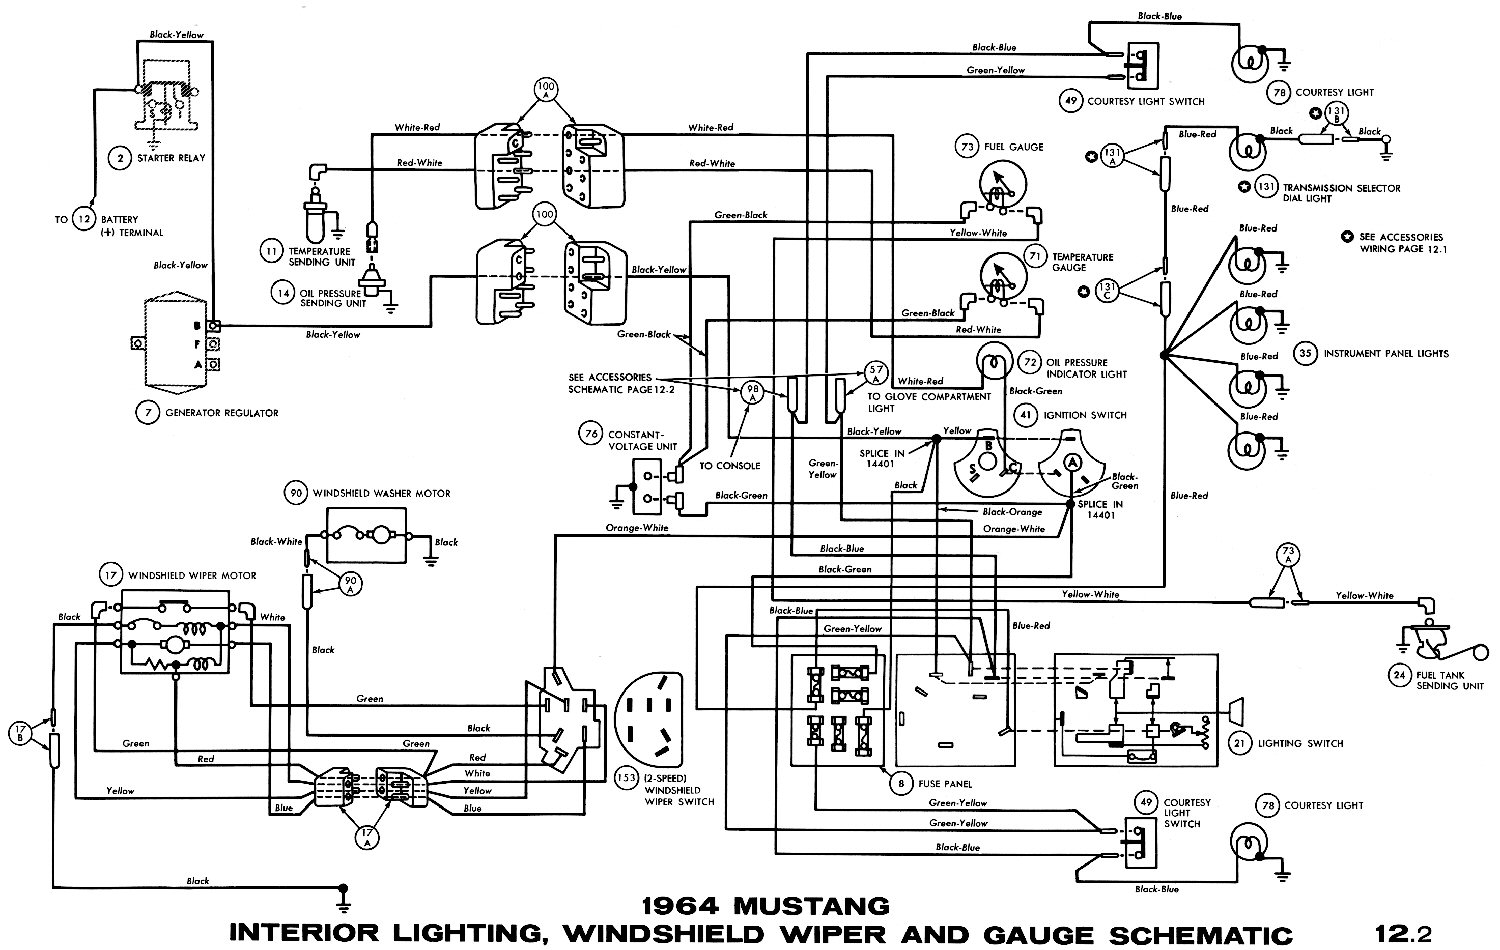 1964k 2014 mustang wiring diagram on 2014 download wirning diagrams  at virtualis.co